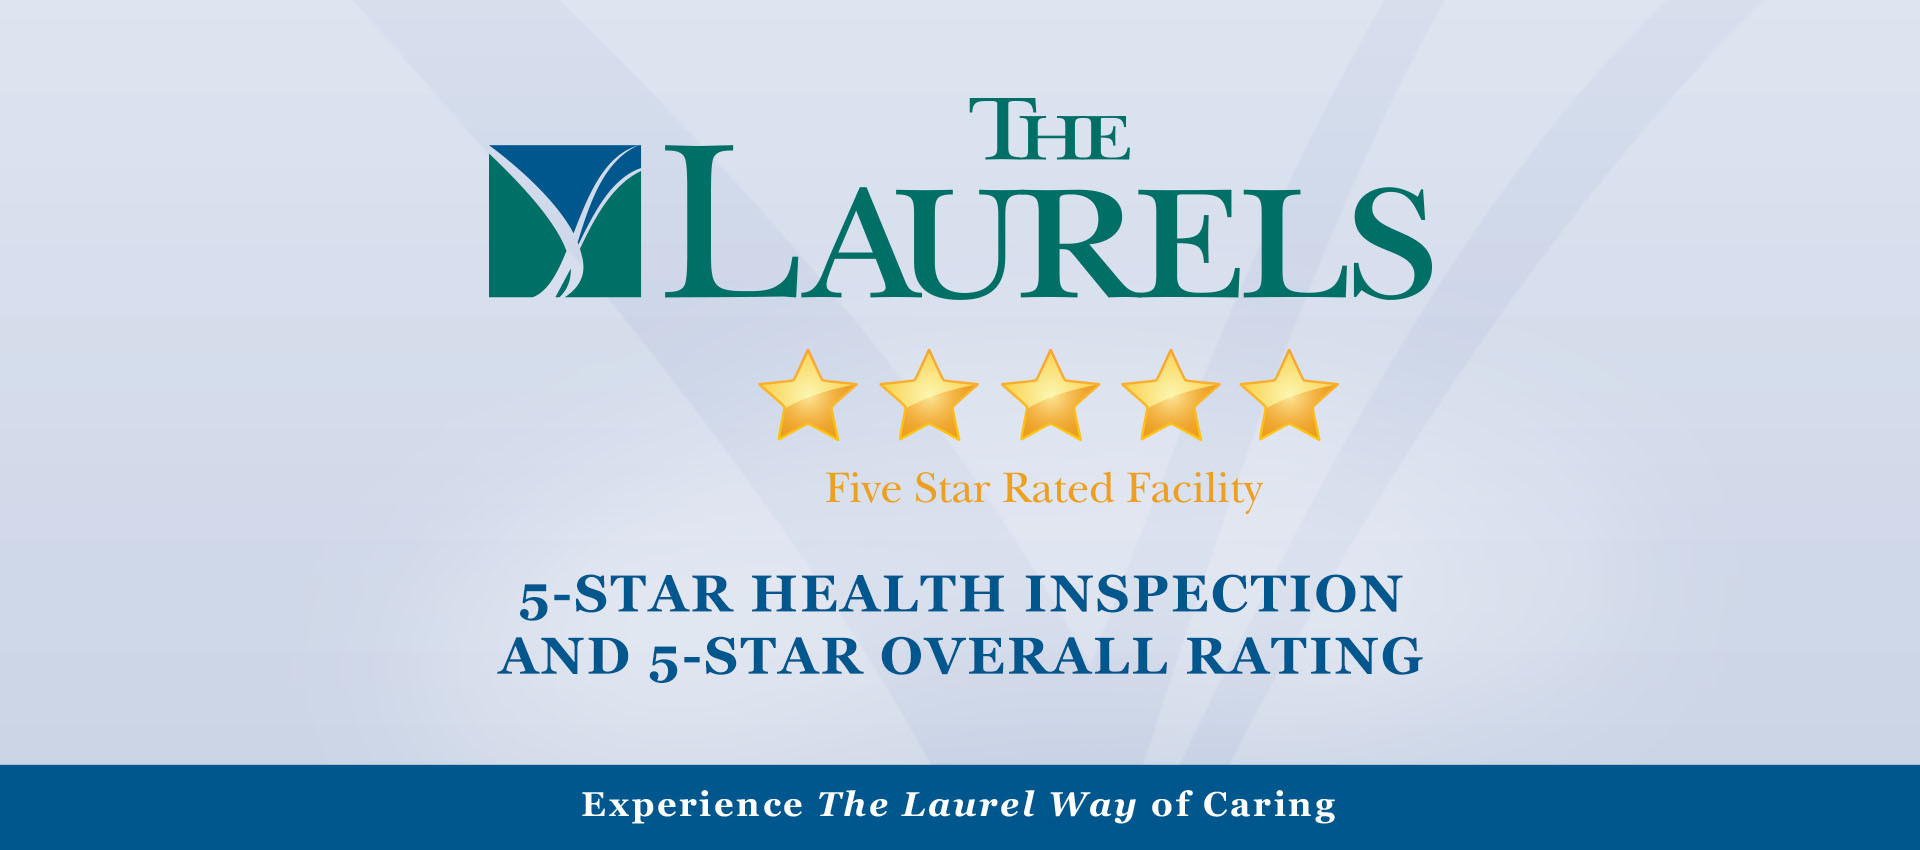 5-Star Health Inspection + Overall Rating